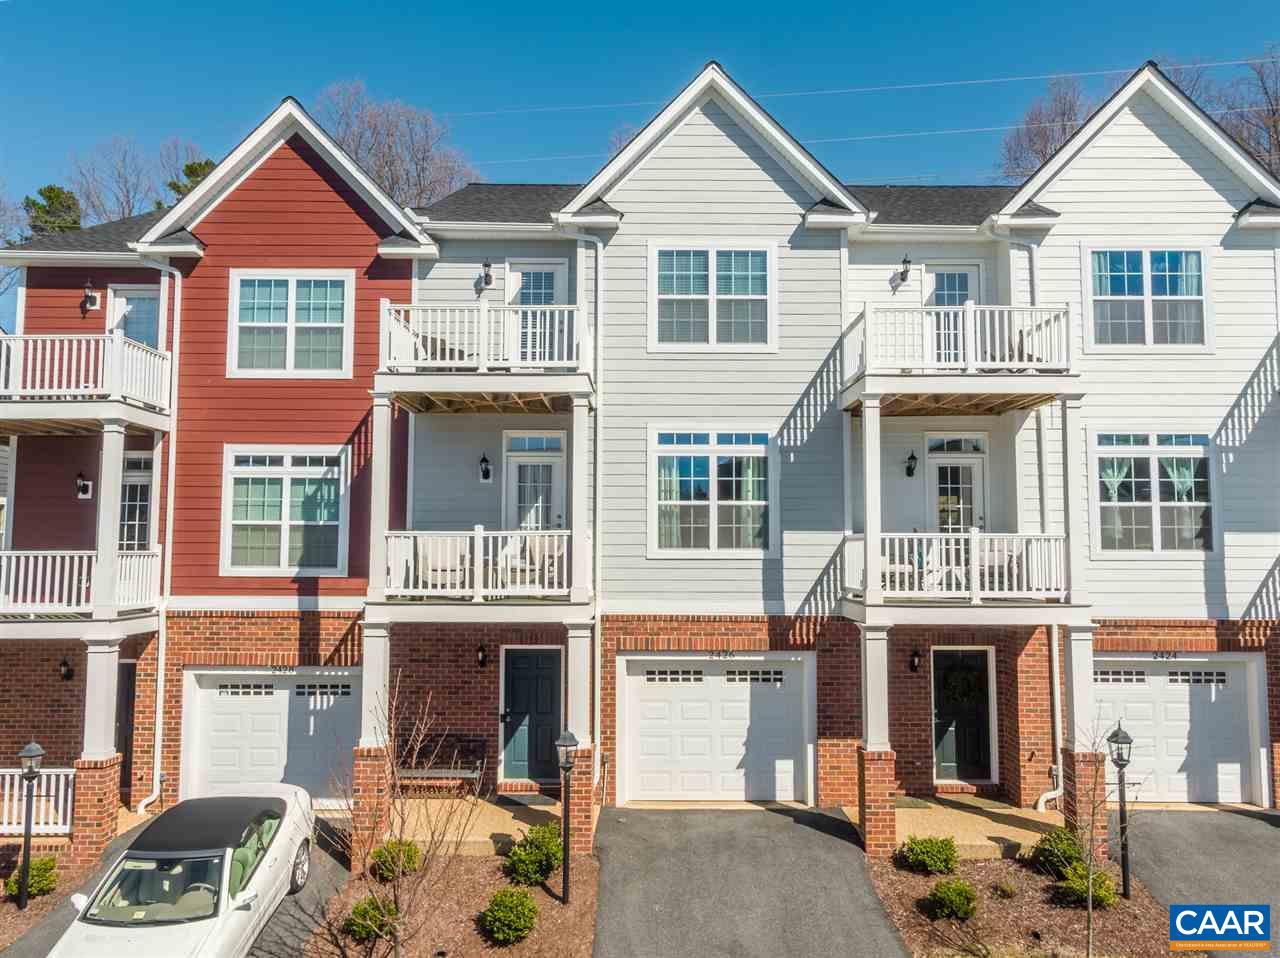 "IMMACULATE / MOVE-IN READY 2017-built Southern Development Homes ""EcoSmart"" townhome in City/UVA convenient PAVILIONS at PANTOPS. Spacious, open floor plan  - the McIntyre model - loaded with upgrades - with over 2100 finished sq.ft. - 3 bedrooms w/ 2 full & 2 half baths; lower level w/ large rec room/office space. Expansive, well appointed kitchen features high-quality white cabinetry, granite & quartz countertops, tile backsplash & GE Stainless appliances (3-door refrigerator & gas range). Enjoy Blue Ridge Mountain views & sunsets from porches off the living room & spacious owner's suite; relax on the  rear patio - a backyard for play/for gardening.  This residence is well-worth your consideration!"